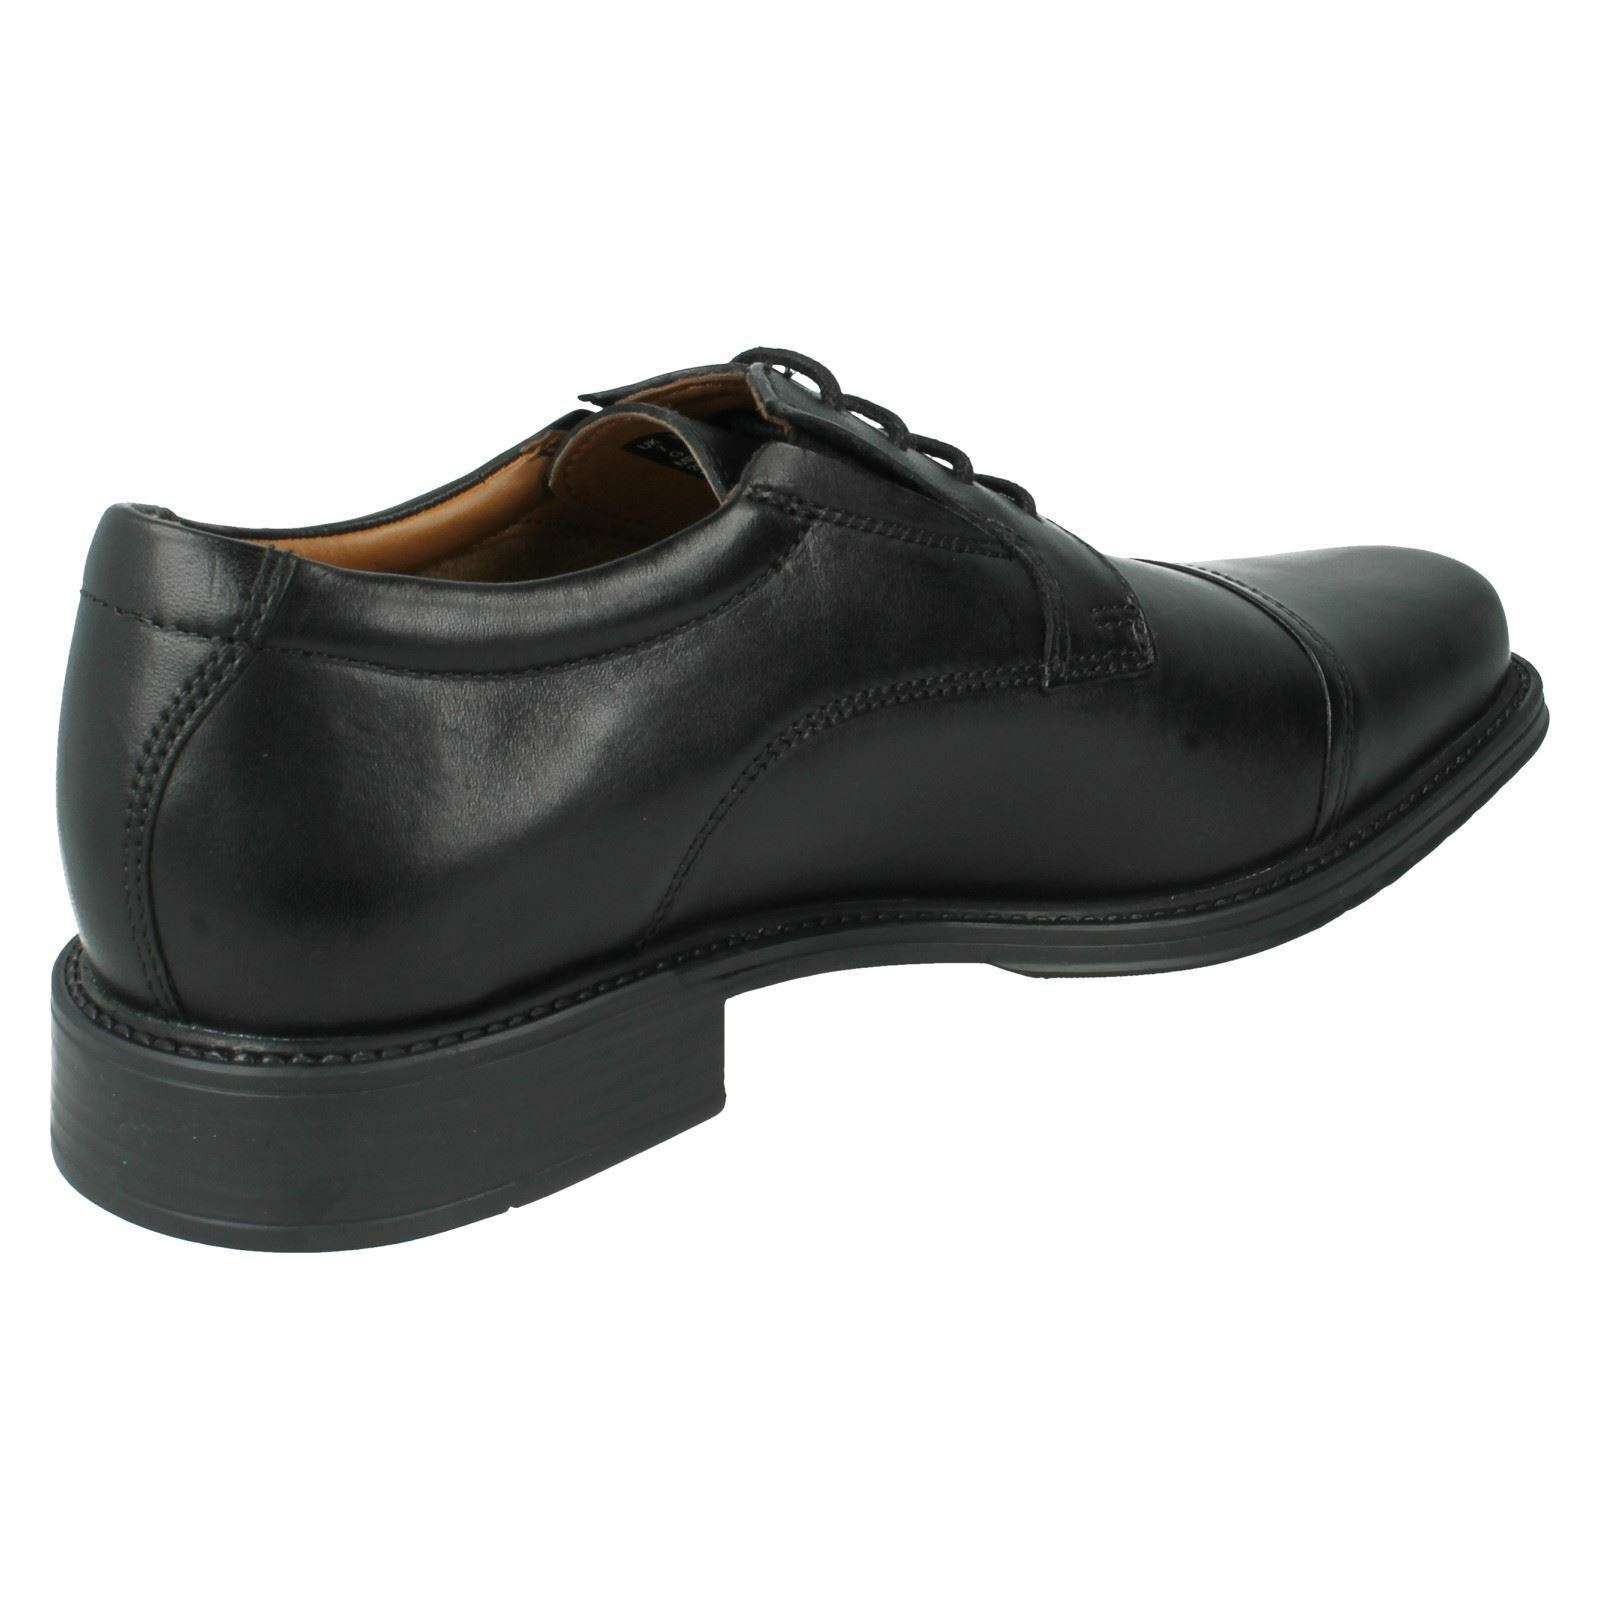 Mens Clarks Black Leather Lace Up Shoes G Fitting Driggs Cap